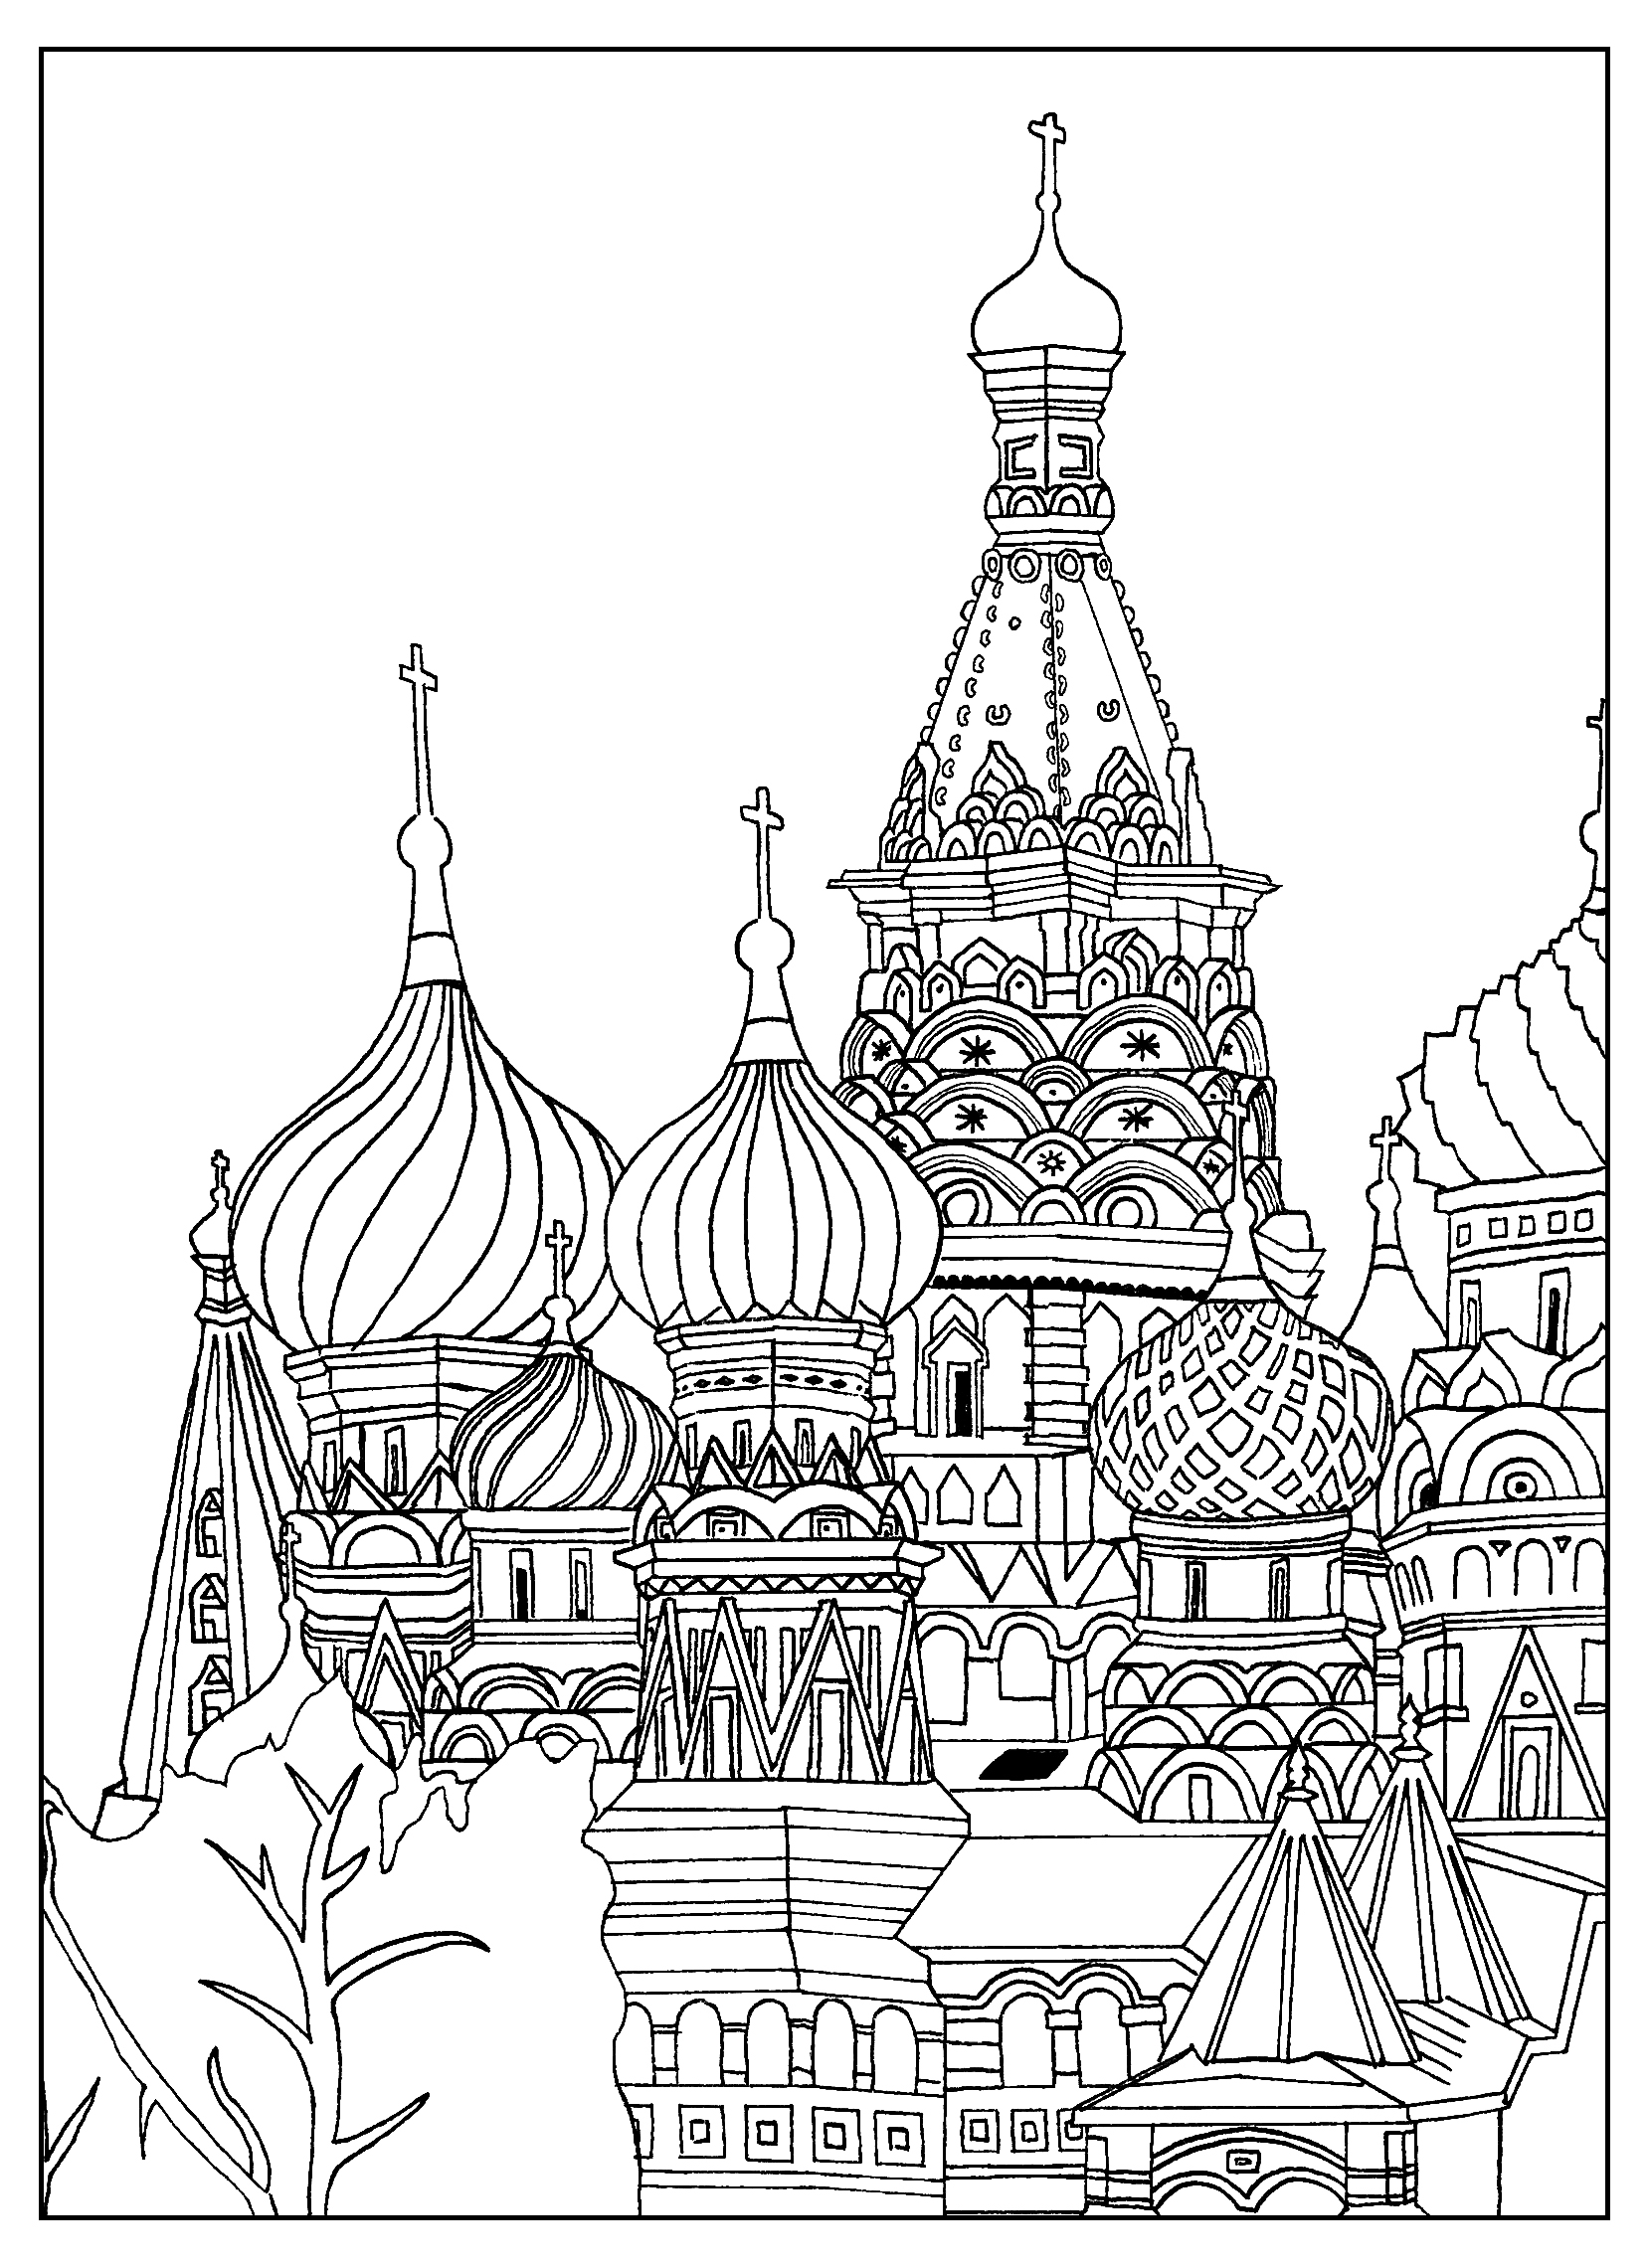 empire state building coloring page empire state building coloring page worksheet page coloring building empire state